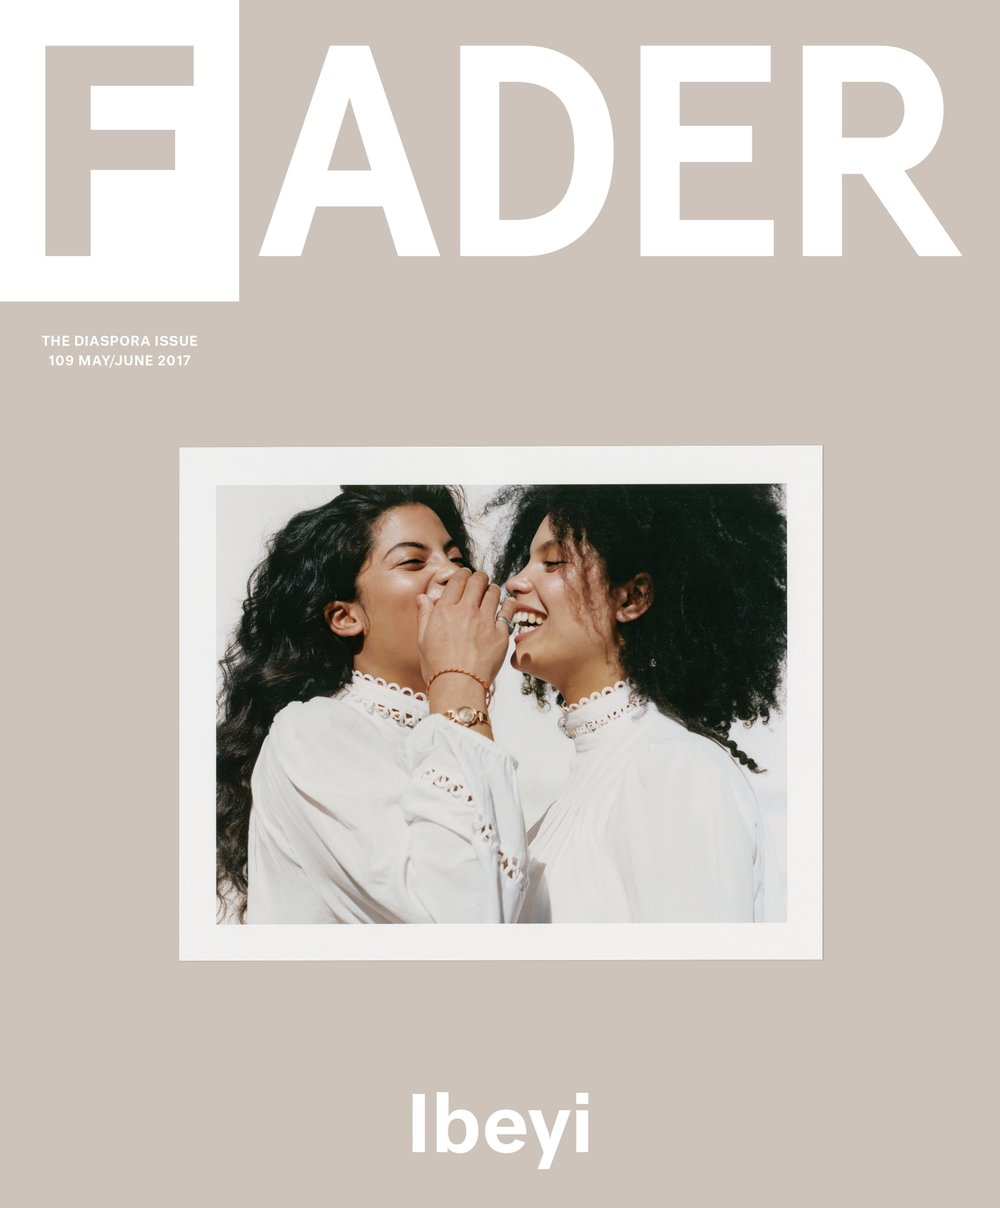 Ibeyi_FADER COVER